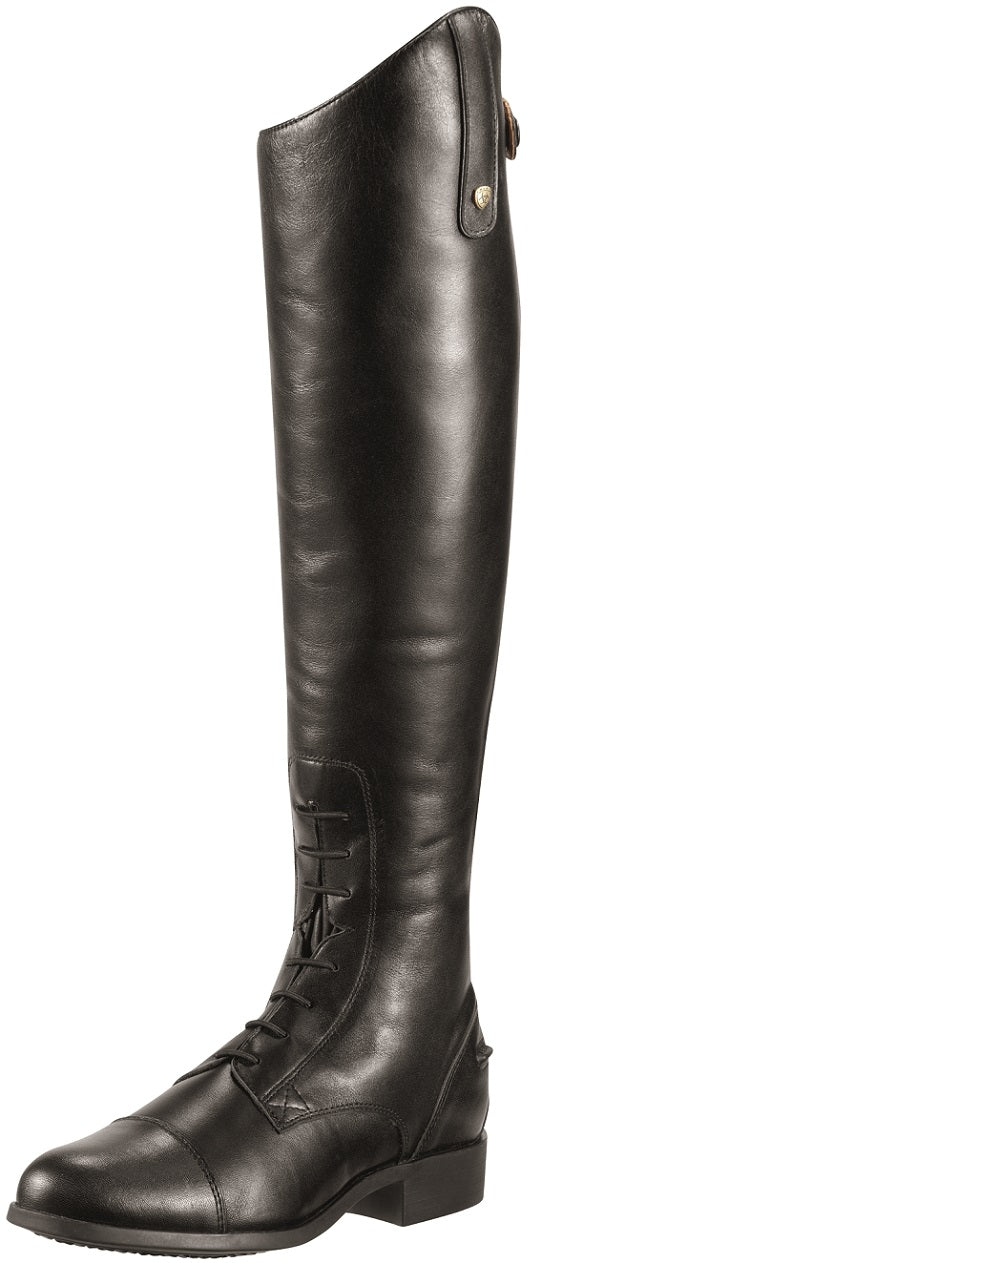 ARIAT WOMEN'S HERITAGE CONTOUR TALL RIDING BOOTS - STYLE #10010174